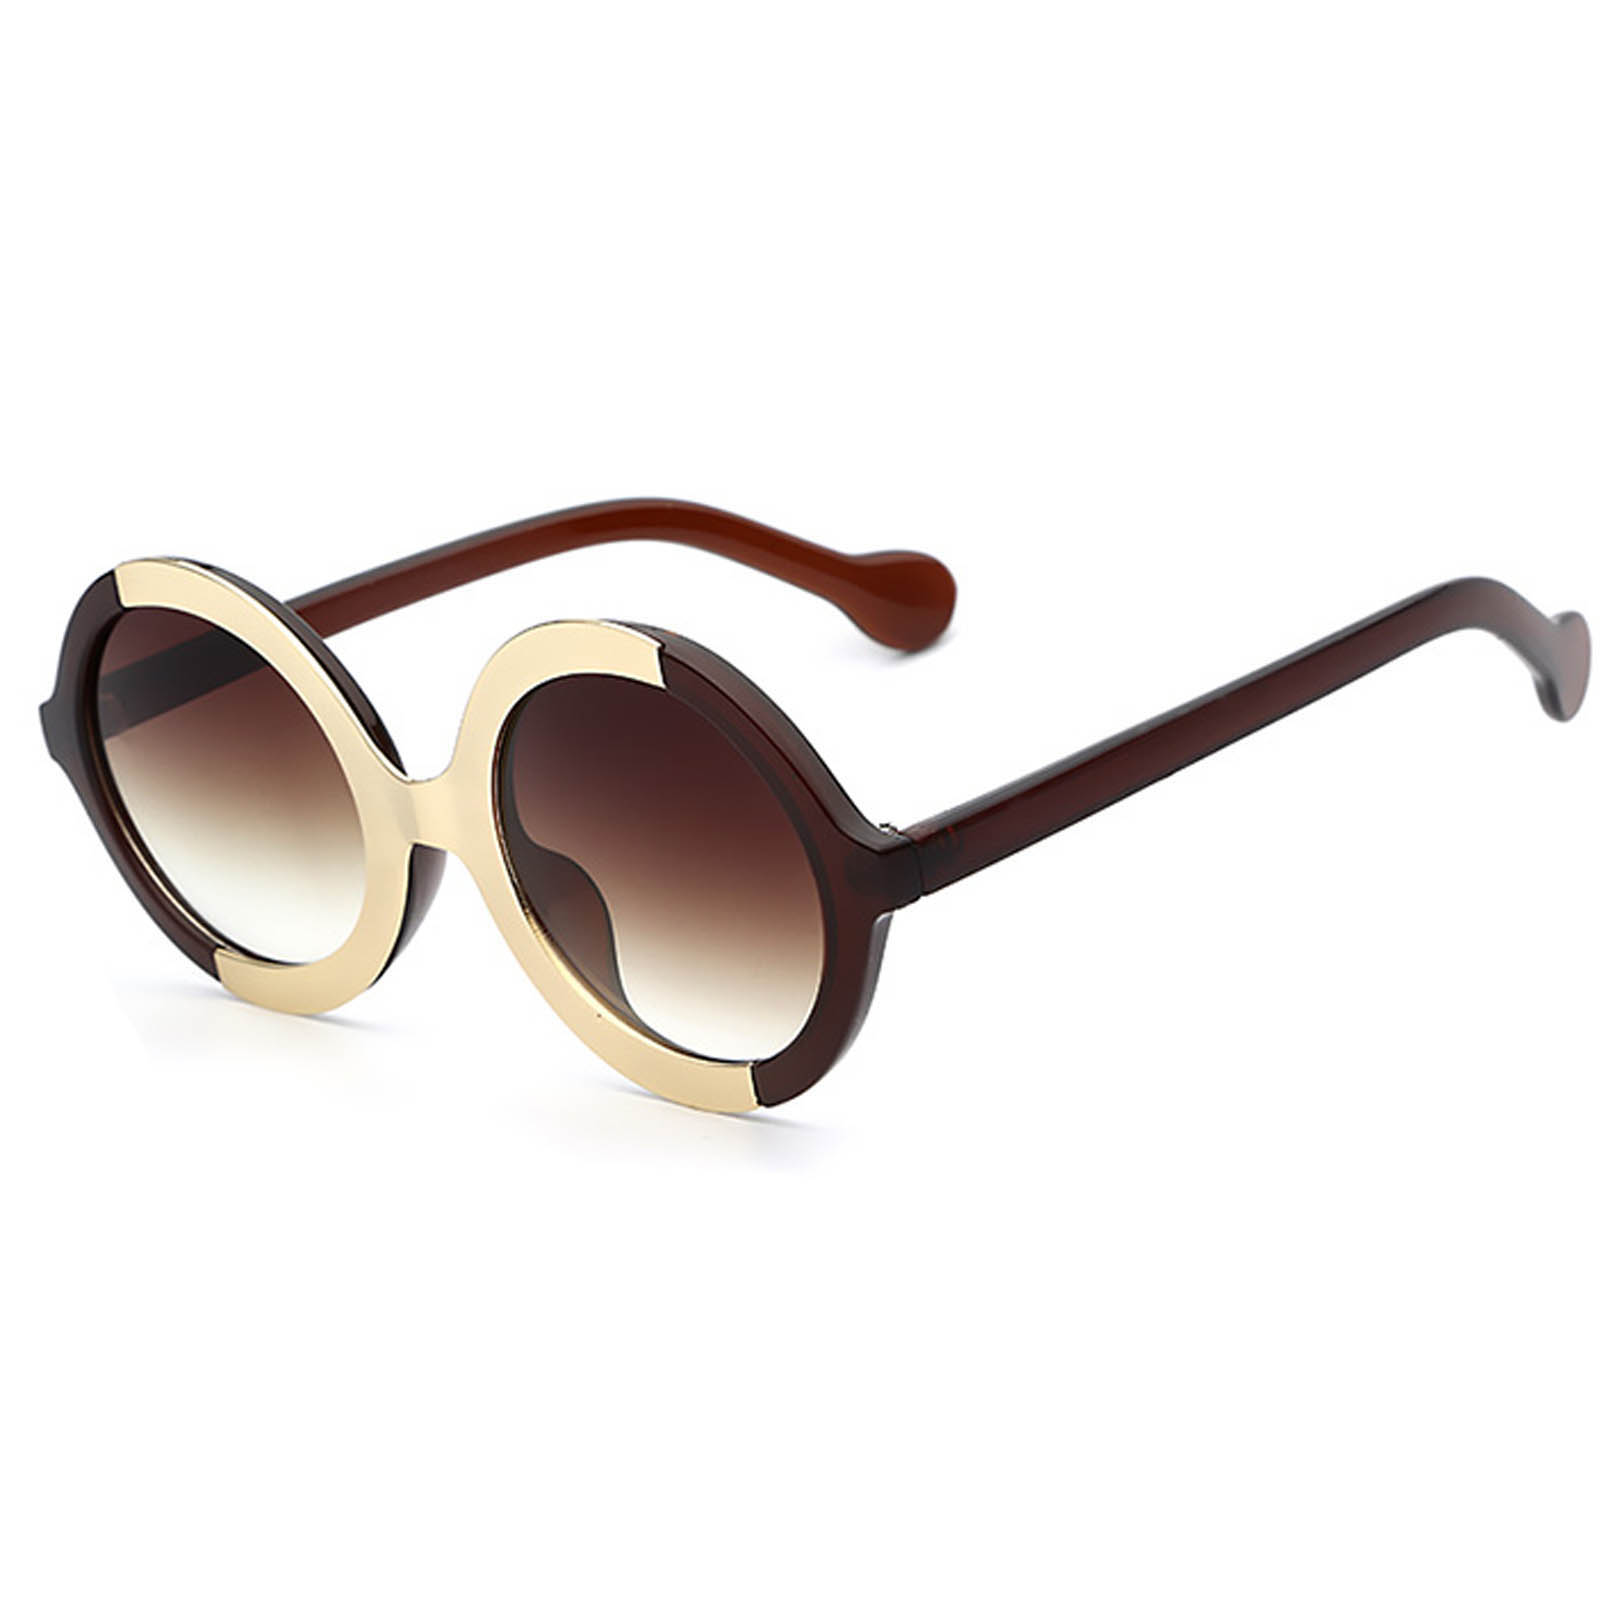 OWL ® 051 C1 Round Eyewear Sunglasses Women's Men's Plastic Round Circle Brown Frame Brown Lens One Pair